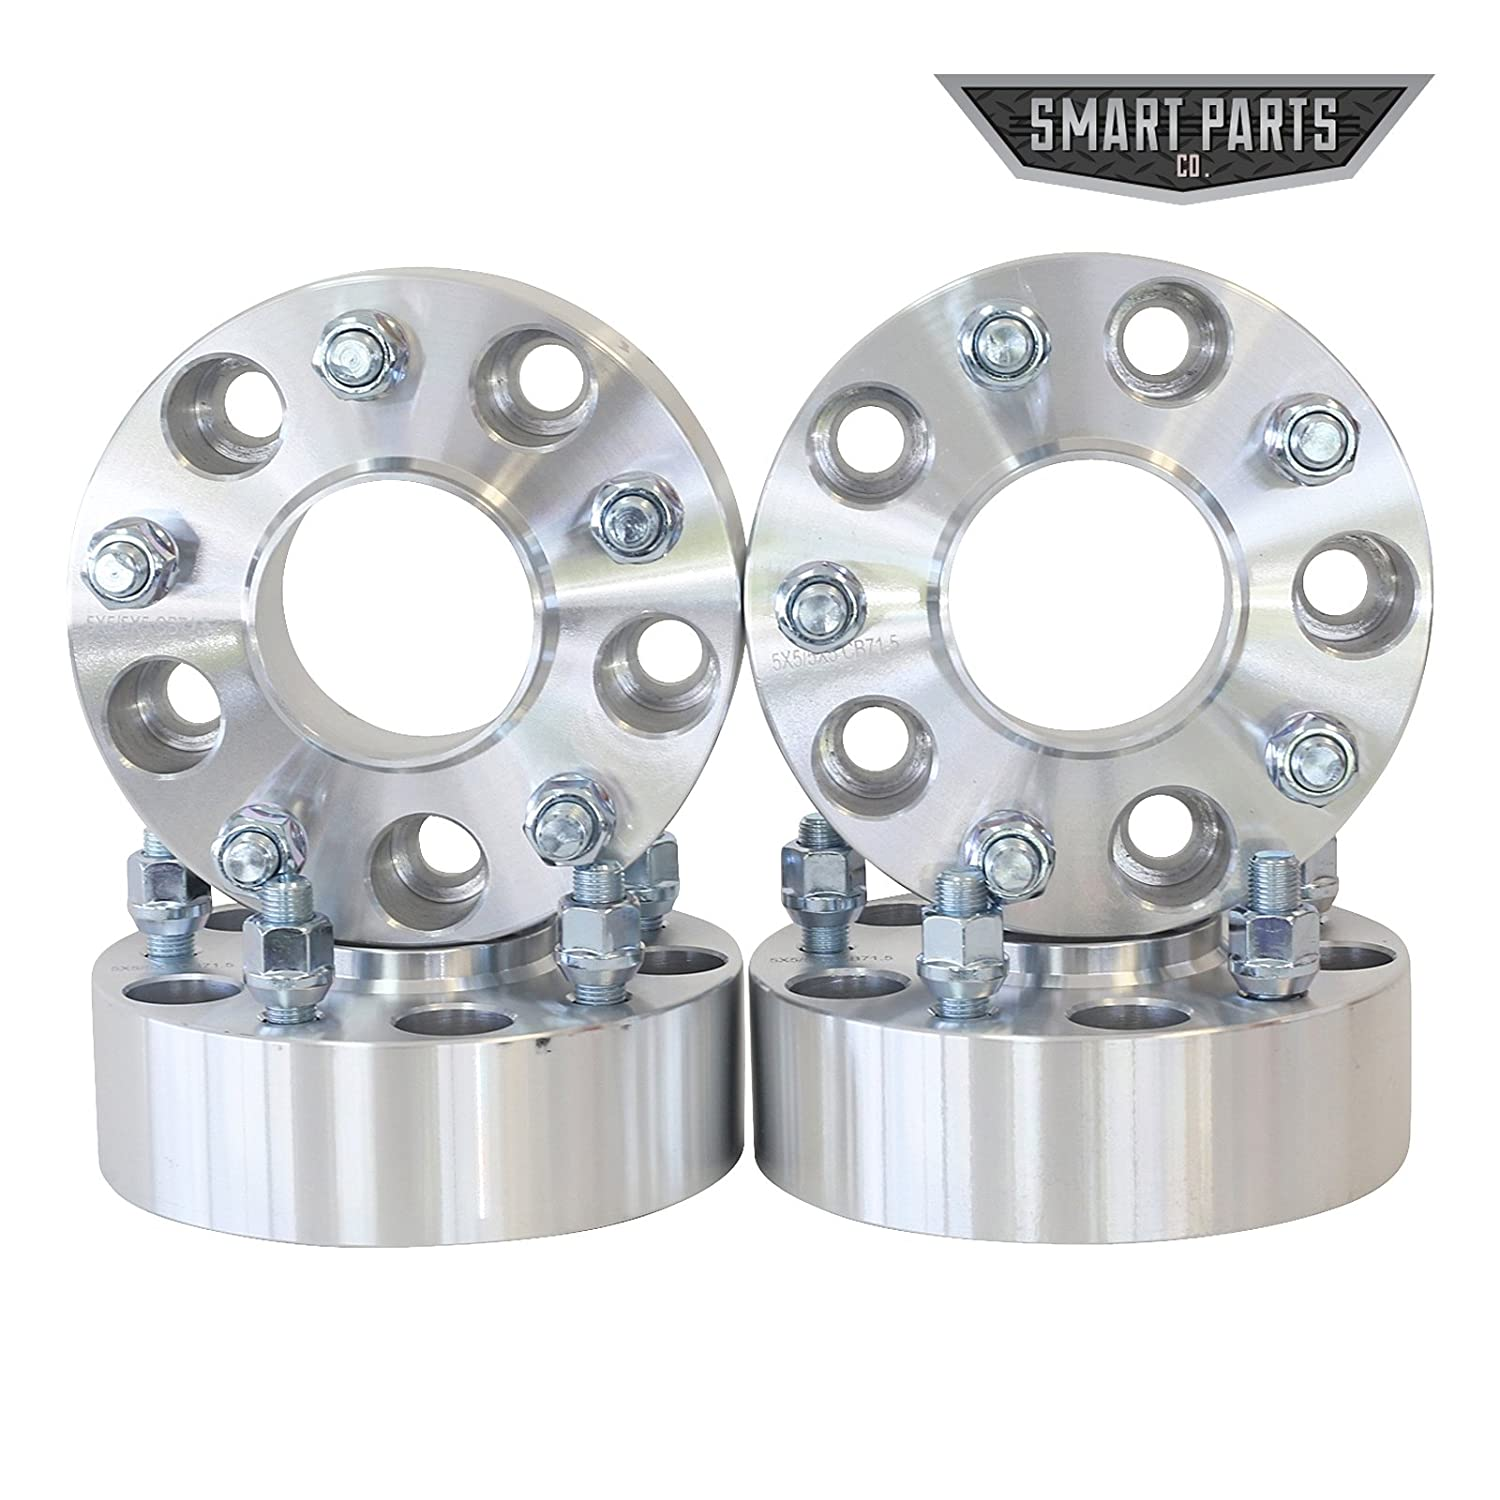 ATV Engineering 4 Qty Wheel Spacers Adapters 4' (2 inch Per Side) fits All 5x5 (5x127) Hubcentric Vehicle to 5x5 Wheel Patterns 1/2 x 20 Threads fits Jeep Wrangler JK Rubicon Wheel Spacer SmartPartsCo.com